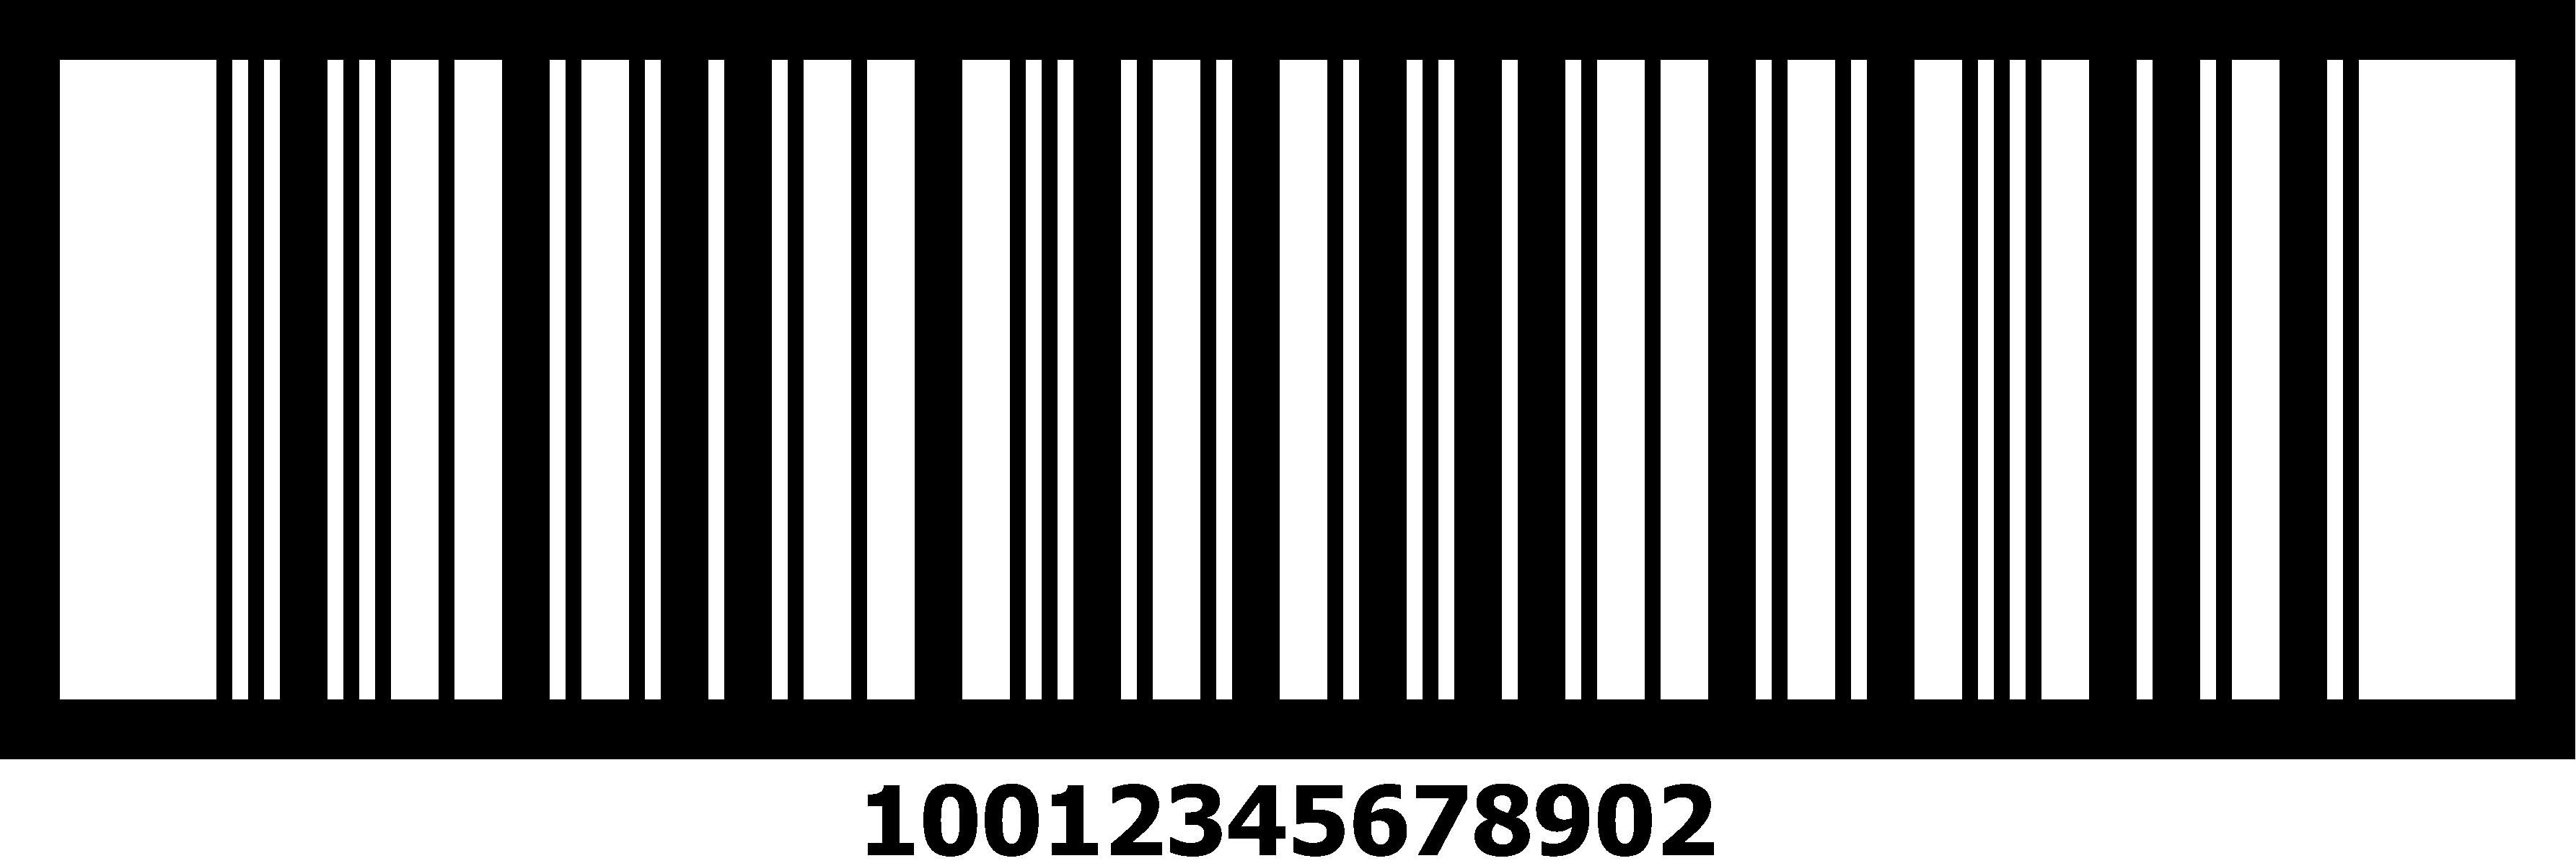 Barcode clipart magazine barcode Clipart Clipart Collection 14 Container